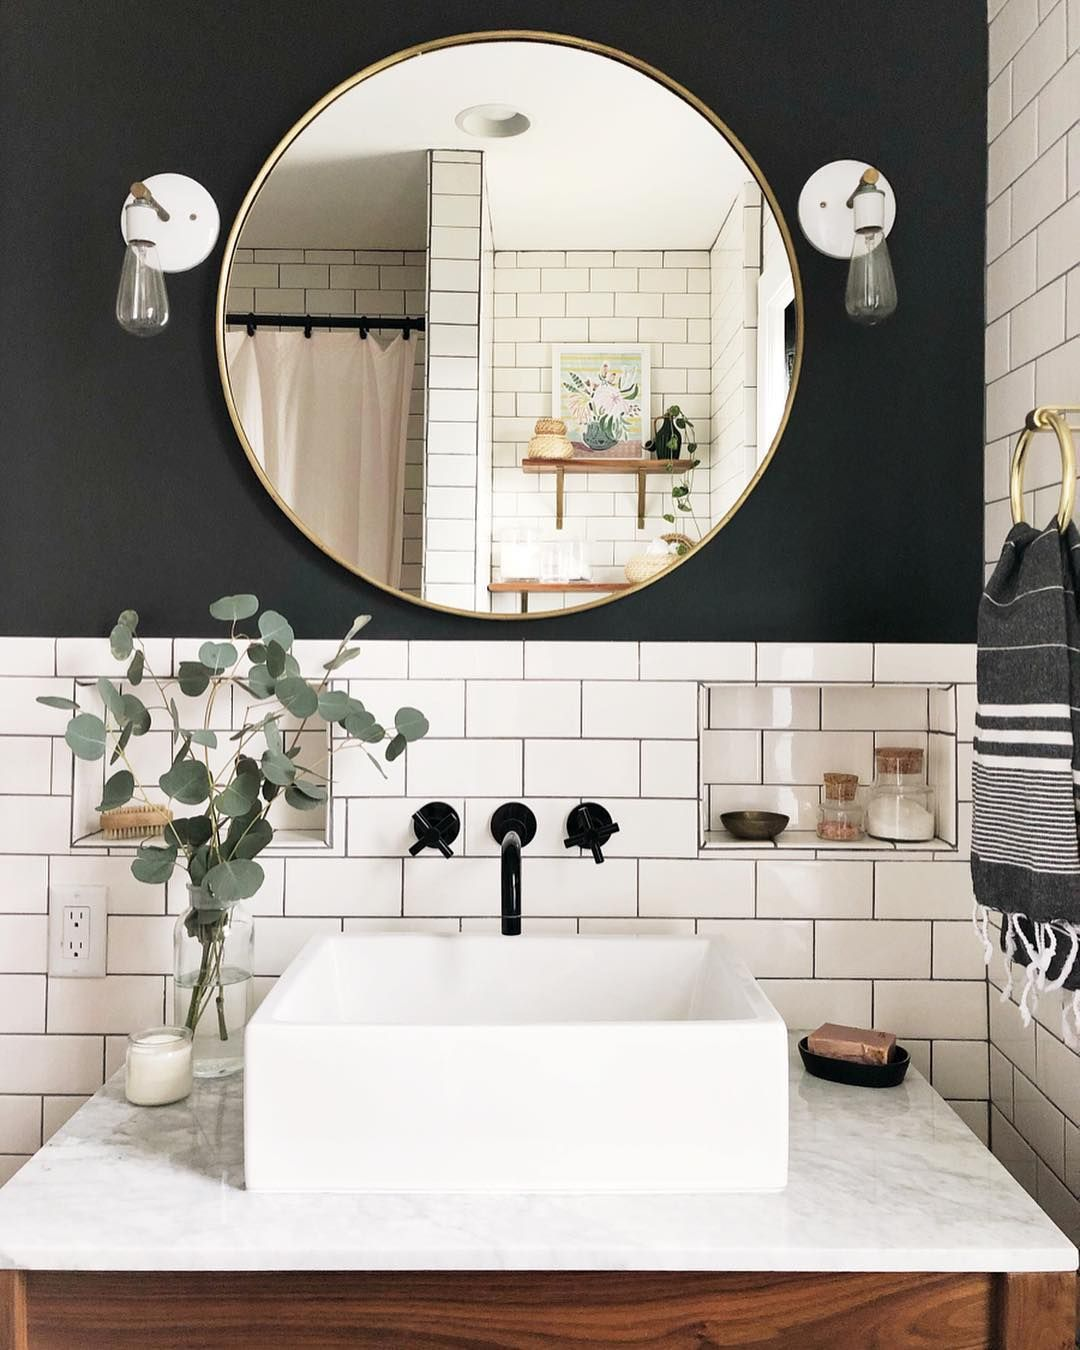 Whitney Clappe Utesch On Instagram Had To Sit On The Toilet To Get This Shot I Promise It Wasn T In Bathroom Inspiration Bathroom Interior Bathroom Design